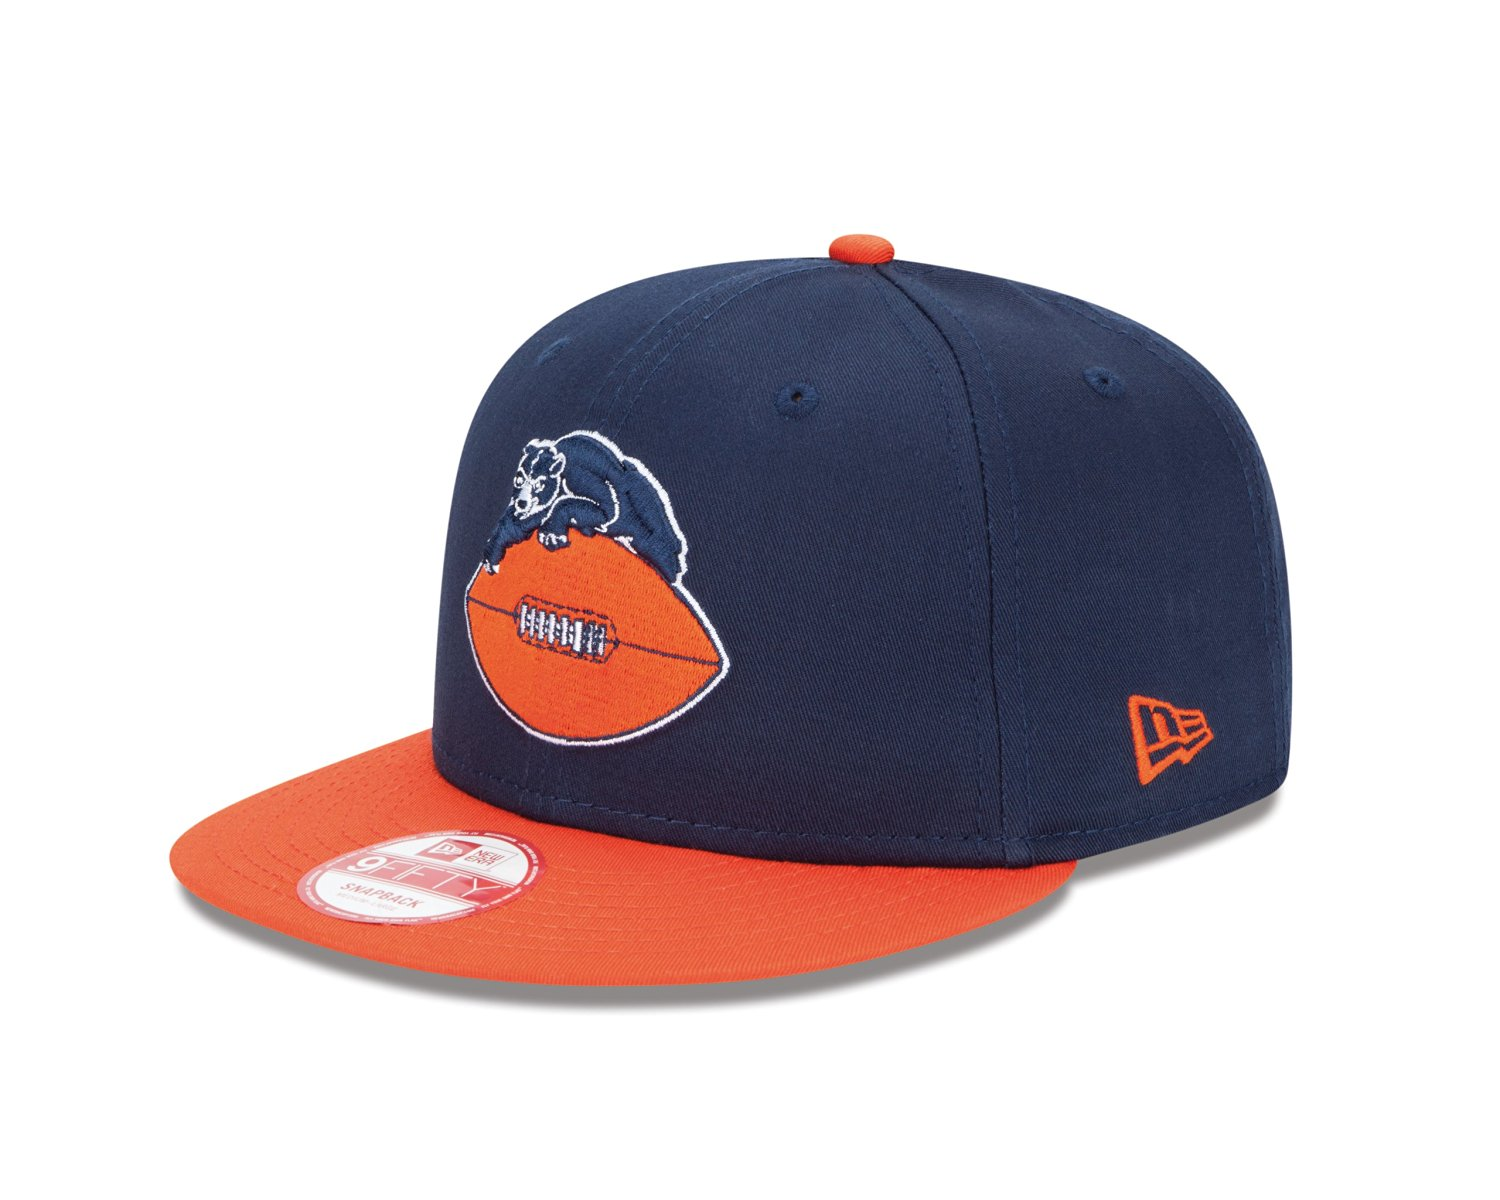 9b67f0bfb Get Quotations · NFL Chicago Bears Baycik Historic 9Fifty Snapback Cap